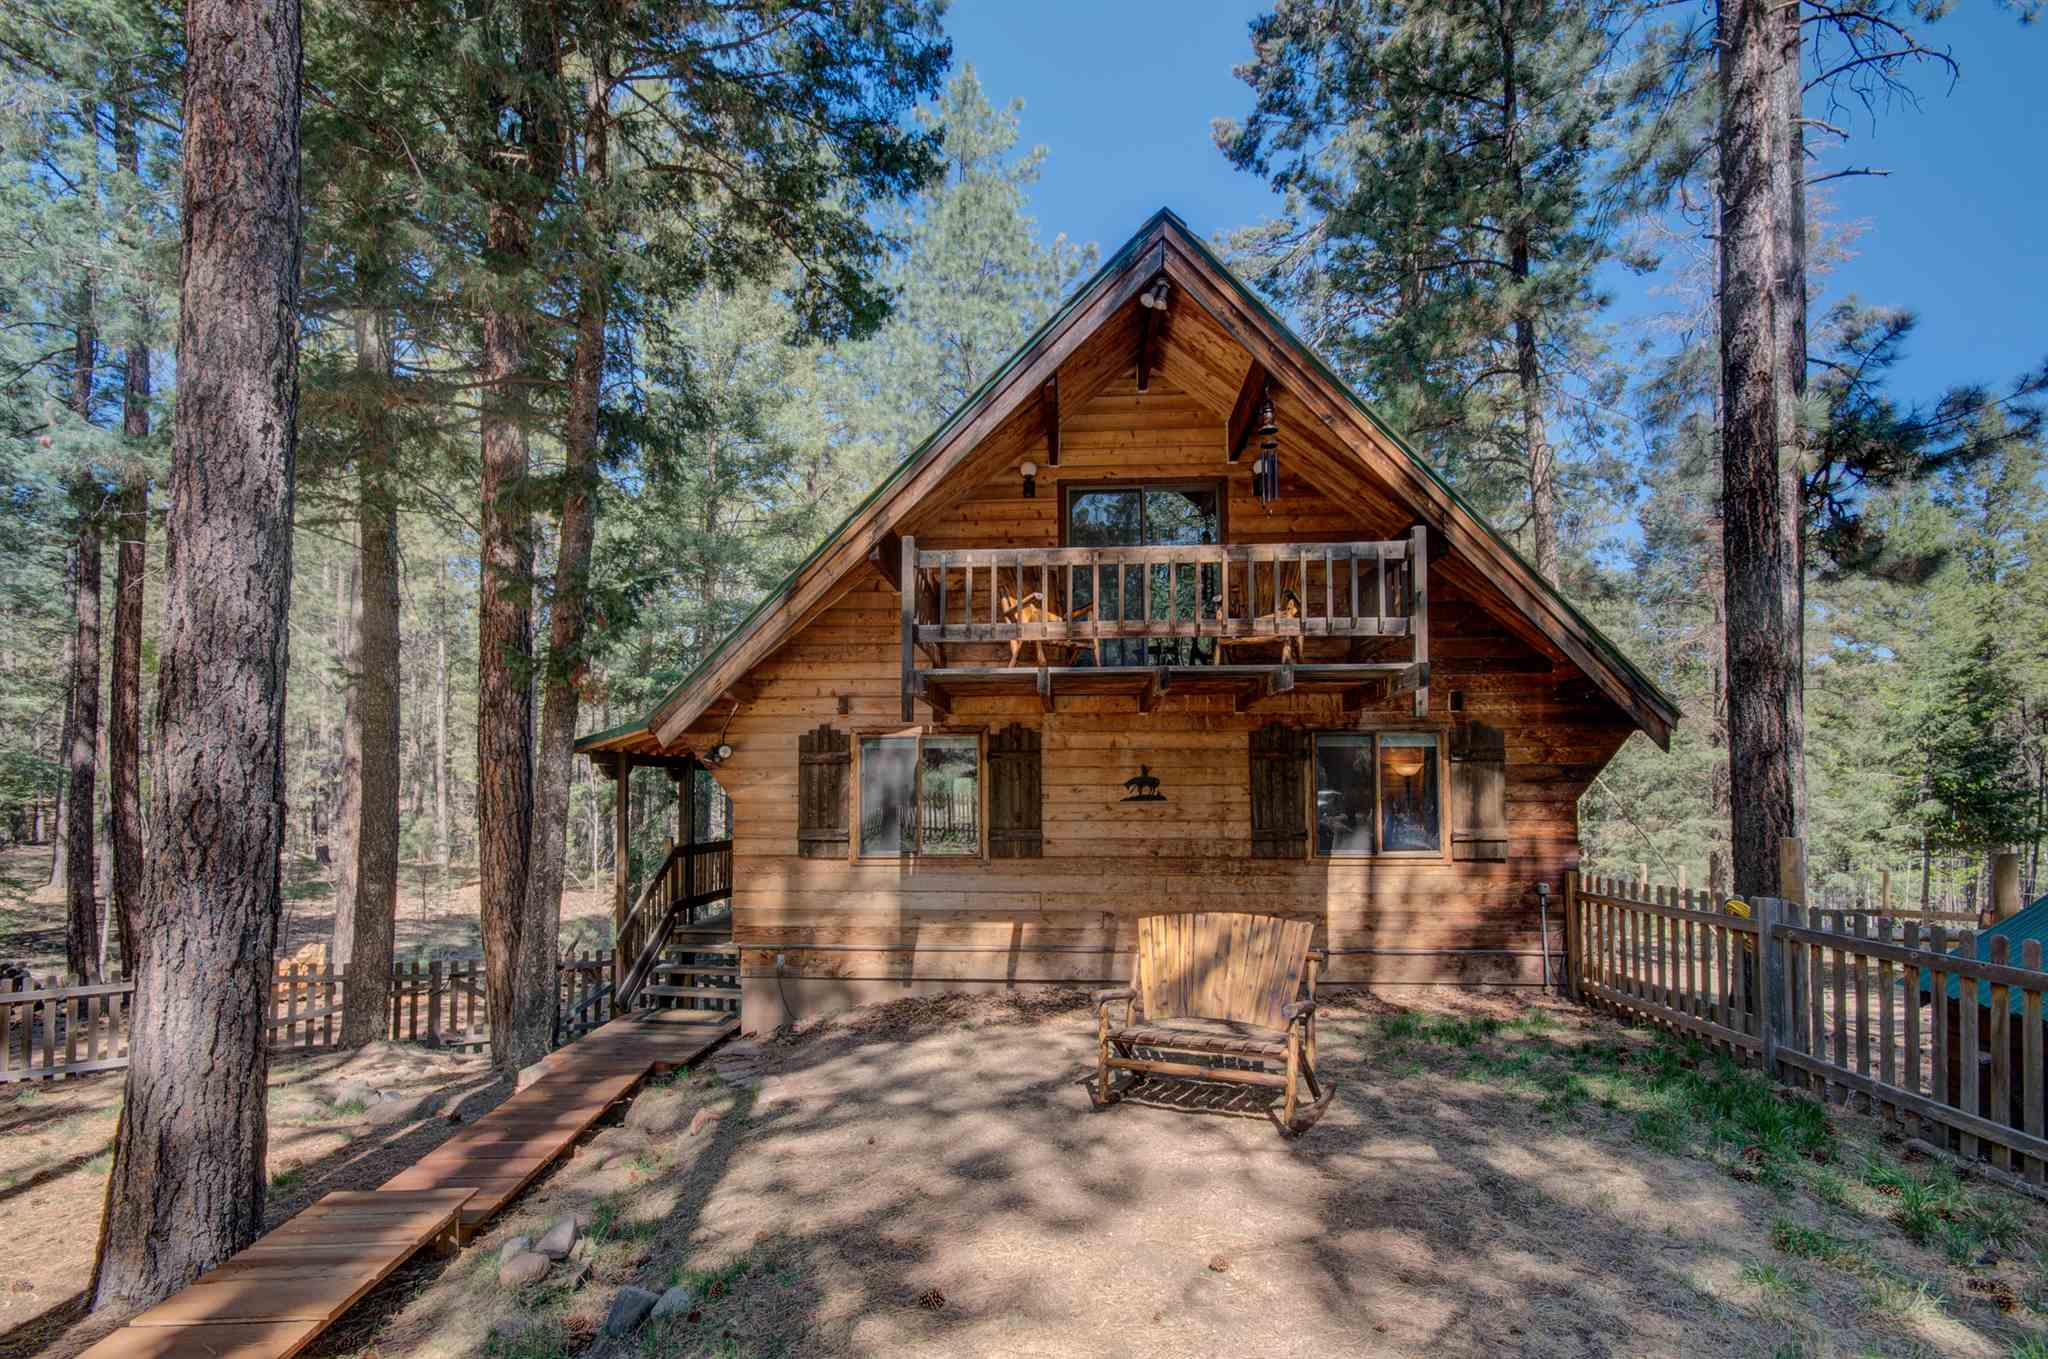 Endless panoramic views of pristine Mountain Forest from Hot tub on deck of this 3 Bedroom, 2 Bath, Log Home, Horse property! 2 story Greatroom wall of windows brings grandeur of Santa Fe National Forest into livingroom! Mudroom, finished basement, w/Gameroom, TV/Mediaroom, and huge Utility/Laundryroom, in 2400 Sq. Ft. Log Home. Chalet style 360 degree Fireplace w/rustic Blacksmiths Hood. Old West Tackroom/Feedbarn, HorseStall, Water tank, large Paddock/Pasture. Newer Roof. Newer Bosch Dishwasher. Newer Dekton Countertops in updated Kitchen. Newer Cast Iron Pellet Stove. Generac Generator wired to switch on. Spanish Corbeled Carport w/separate Quad cubby. Morgan Storage Building w/Shop bench. Driveway finished with gravel and a French drain. Picket Fenced front yard, w/Firepit & Benches, for S'mores! View of Redondo Peak. Hiking, fishing, snow sports, rock climbing, hot springs, Valles Caldera National Park all short drive away.  Easy 30 minute commute to Los Alamos.